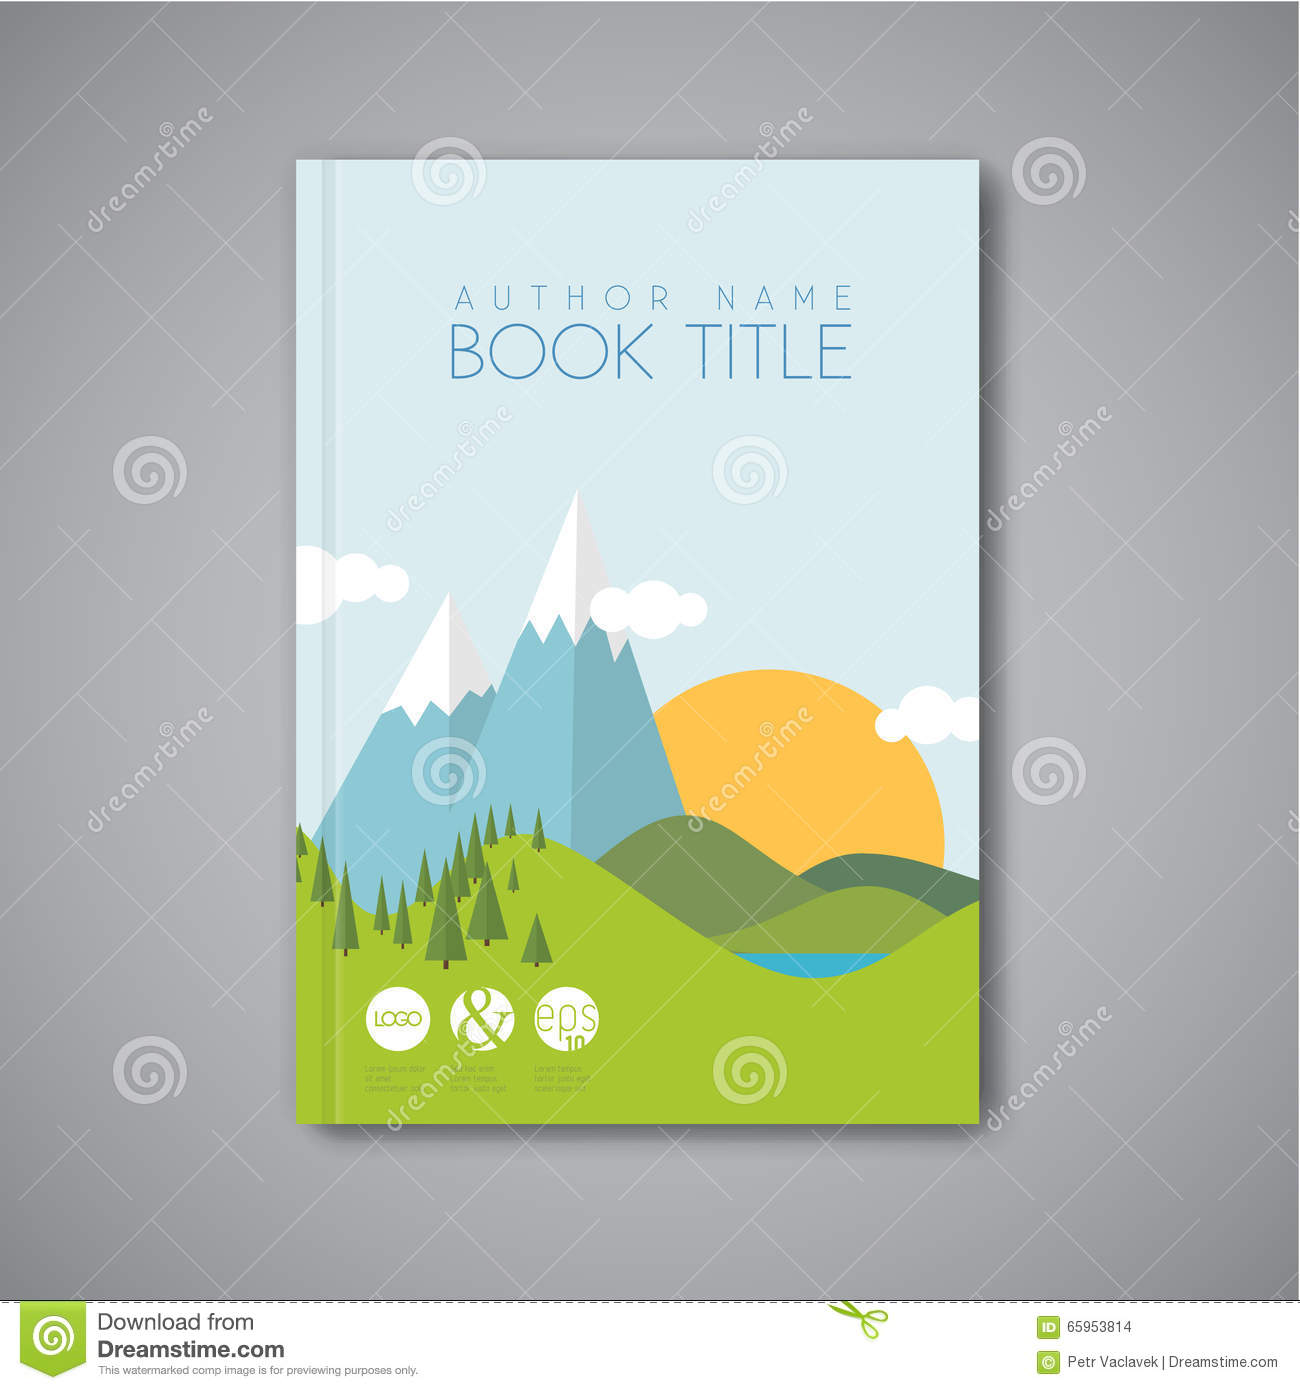 Minimalist Book Cover Template ~ The witch of white pine by jo naylor via flickr book